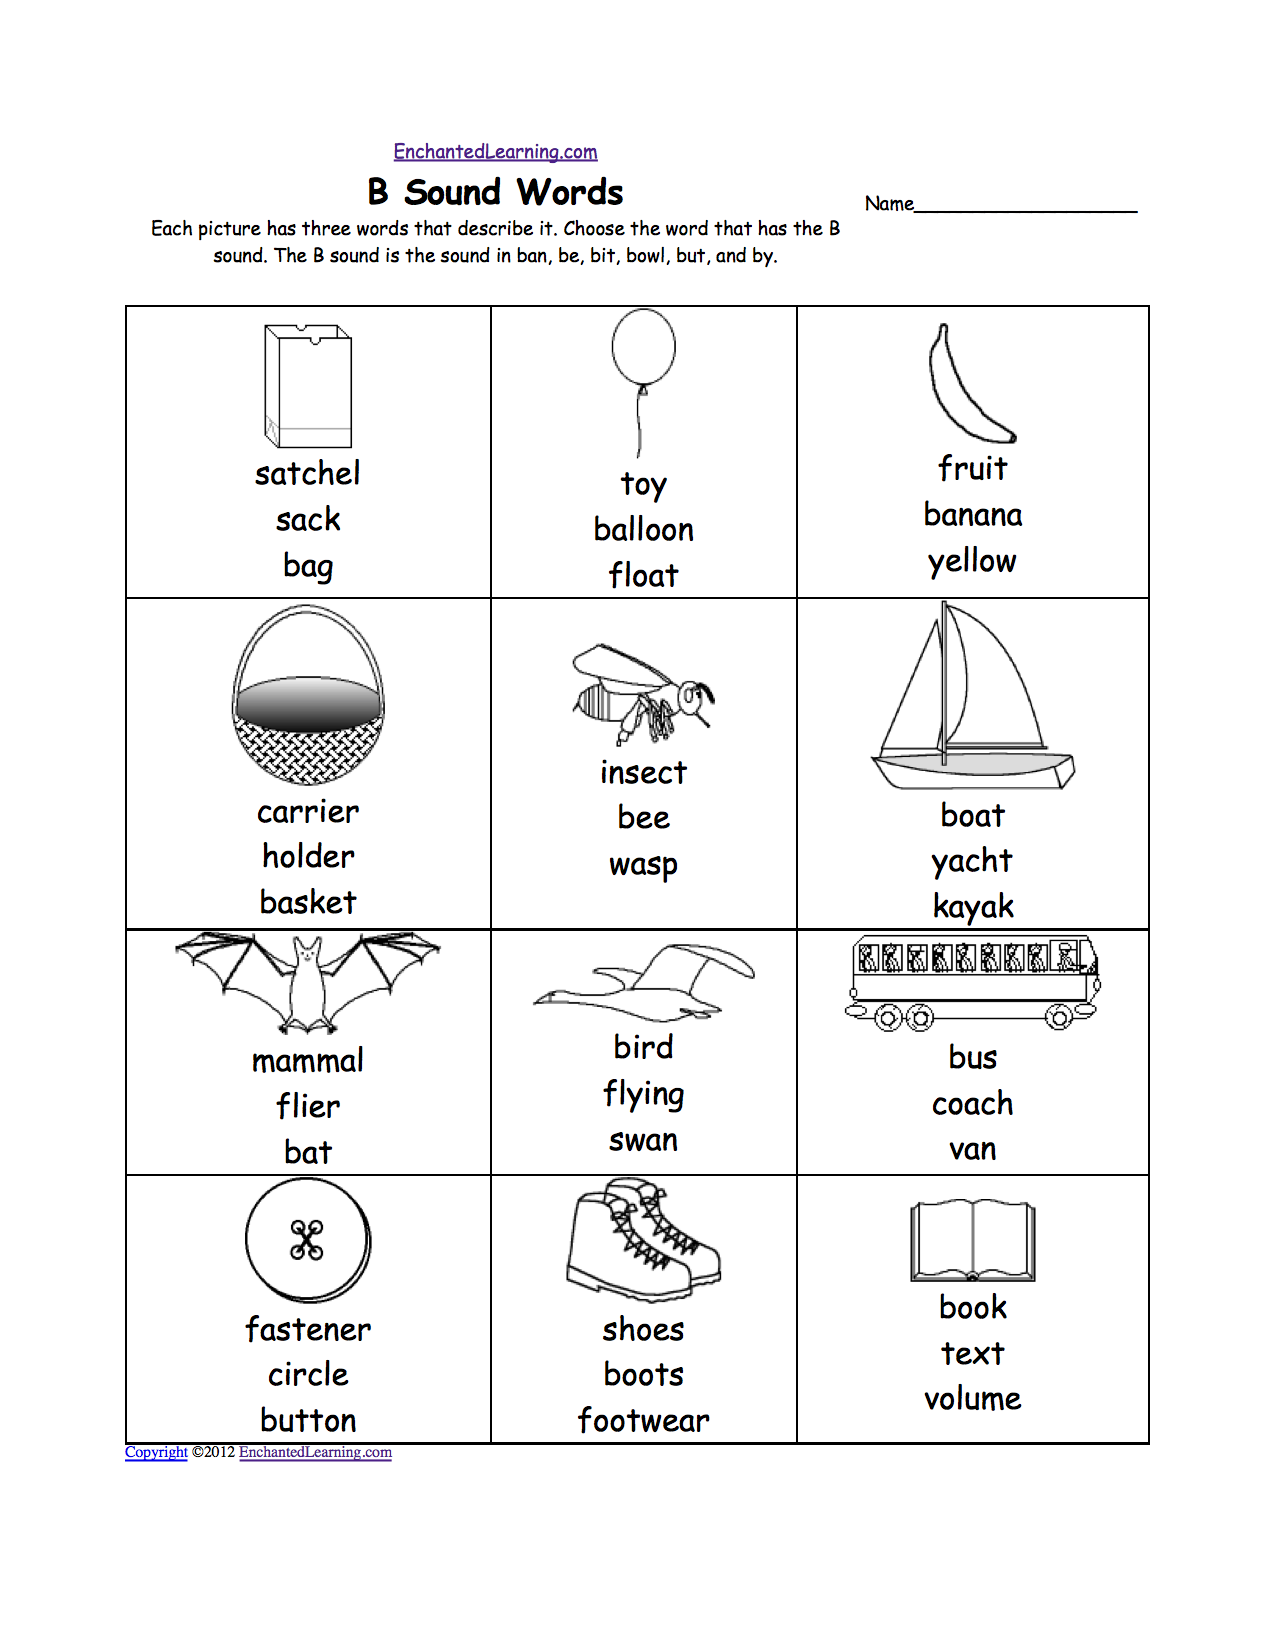 Proatmealus  Surprising Phonics Worksheets Multiple Choice Worksheets To Print  With Engaging Quotbquot Sound Phonics Worksheet Multiple Choice Each Picture Has Three Words That Describe It Choose The Word That Has A Quotbquot Sound The Quotbquot Sound Is The Sound  With Divine Spelling Year  Worksheets Also Double Consonant Worksheets In Addition The Mole And Volume Worksheet Answer Key And Parts Of A Chemical Equation Worksheet As Well As Nuclear Decay Worksheet With Answers Additionally Quadrilateral Sort Worksheet From Enchantedlearningcom With Proatmealus  Engaging Phonics Worksheets Multiple Choice Worksheets To Print  With Divine Quotbquot Sound Phonics Worksheet Multiple Choice Each Picture Has Three Words That Describe It Choose The Word That Has A Quotbquot Sound The Quotbquot Sound Is The Sound  And Surprising Spelling Year  Worksheets Also Double Consonant Worksheets In Addition The Mole And Volume Worksheet Answer Key From Enchantedlearningcom